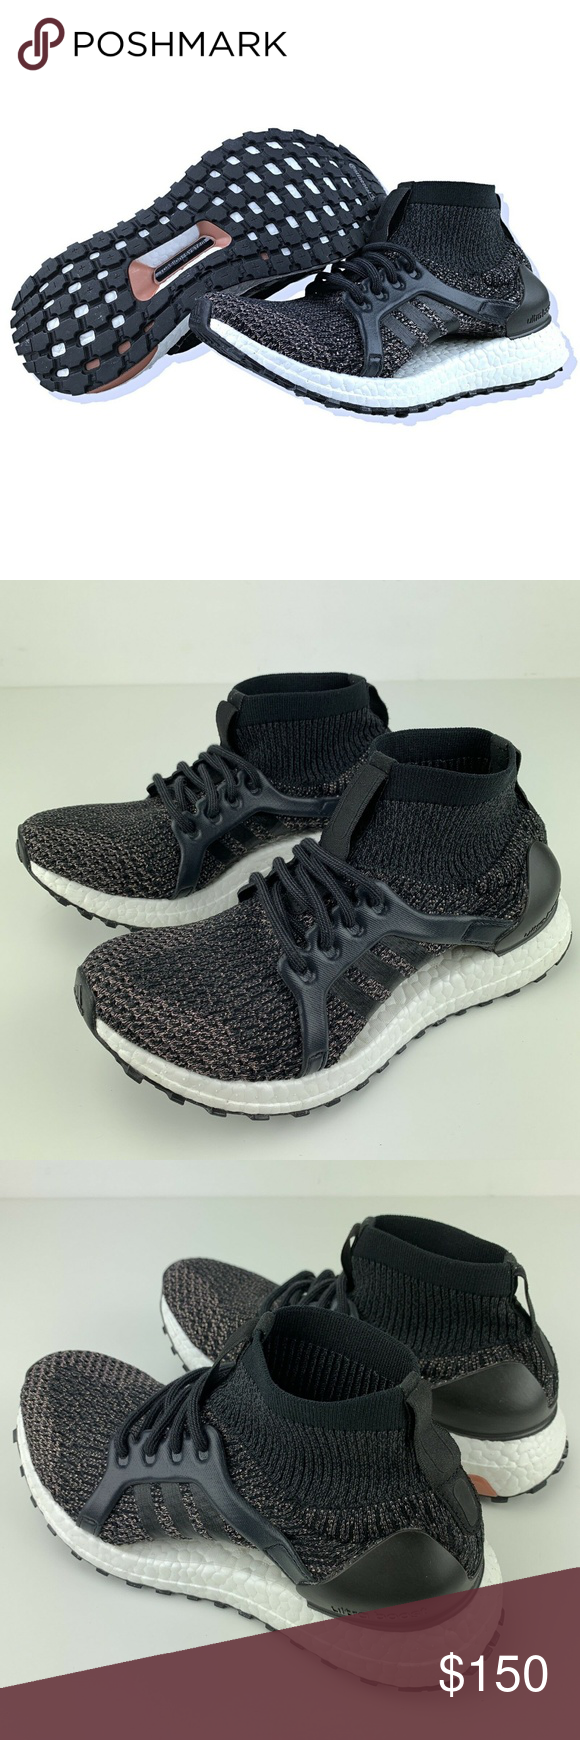 timeless design 8fdc1 a9c72 Adidas Ultra Boost X All Terrain LTD Running Shoe Adidas Ultra Boost X  Womens Size 5.5, 6, 11 All Terrain LTD Running Shoes Core Black Brand New  Shoes, ...